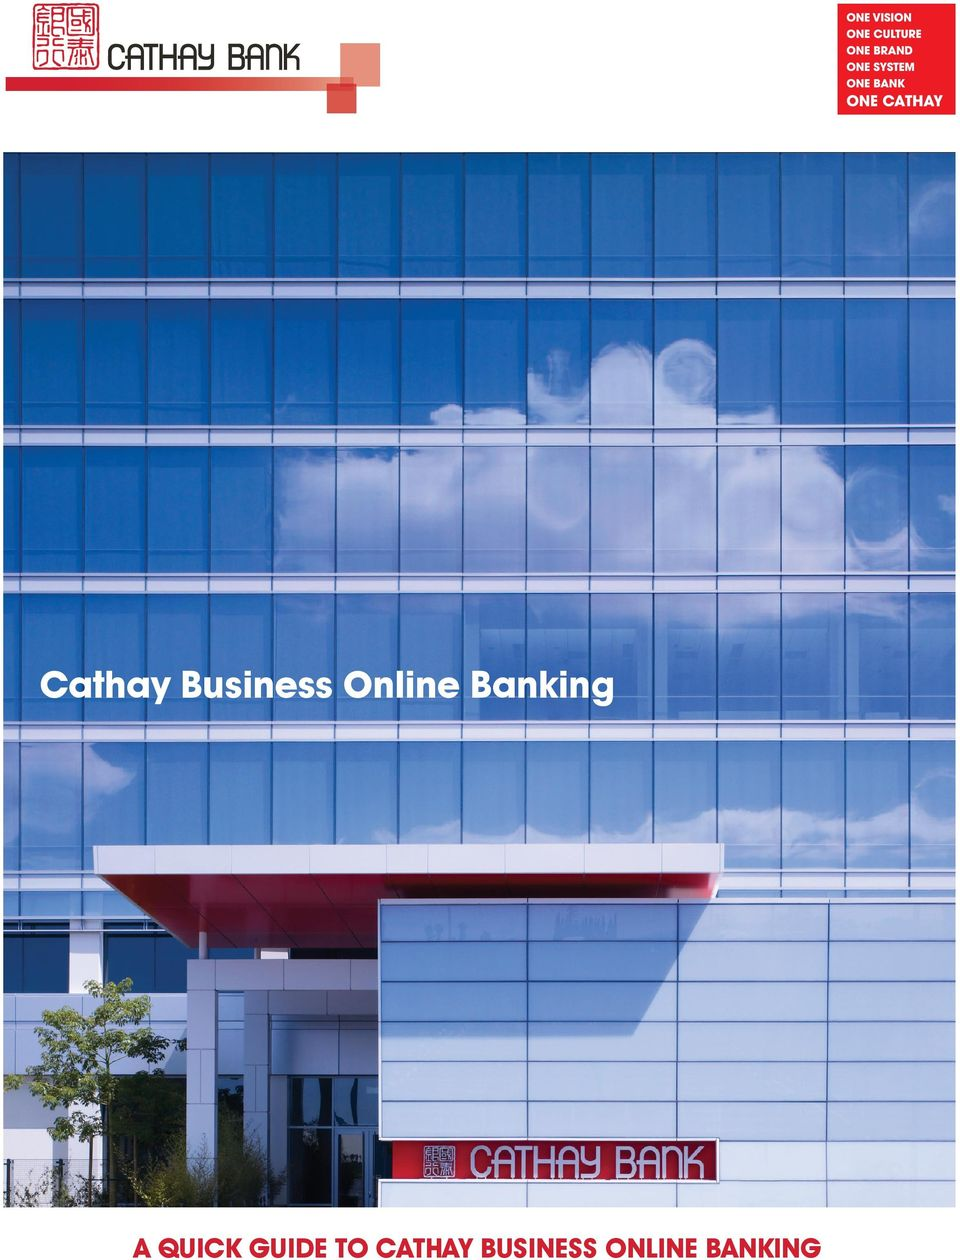 ONLINE BANKING R6119 CATHAY